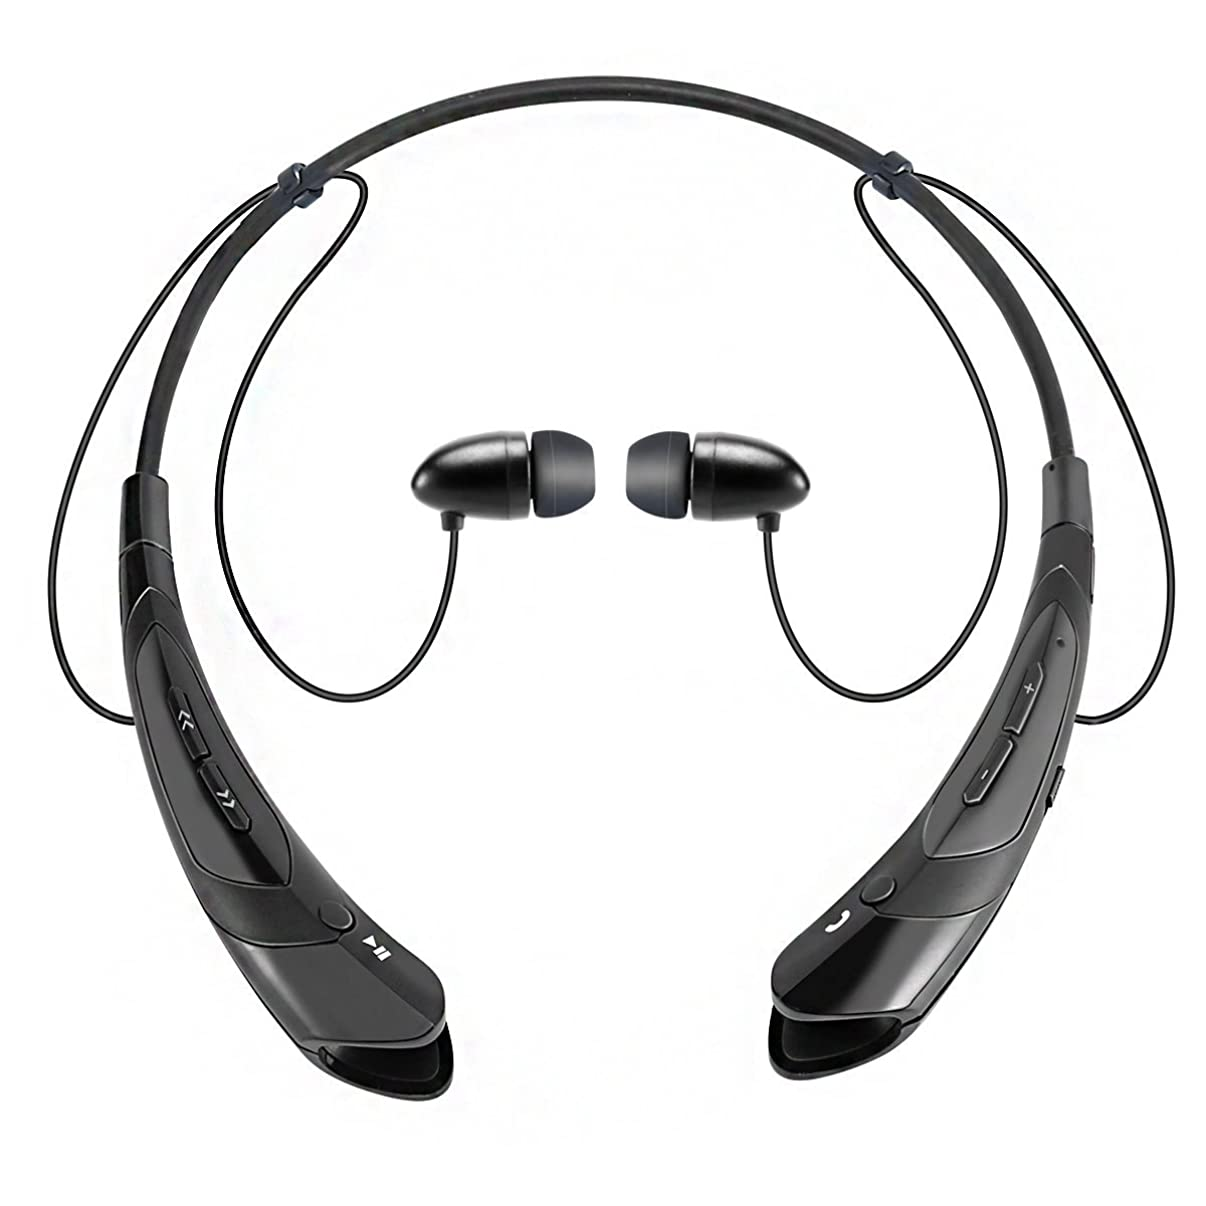 Bluetooth Earphone Headphones,V4.1 Stereo Noise Cancelling Wireless Headset, Sport Neckband Style Magnetic Earbuds with Mic for iPhone Series and Android Phones (Black2)